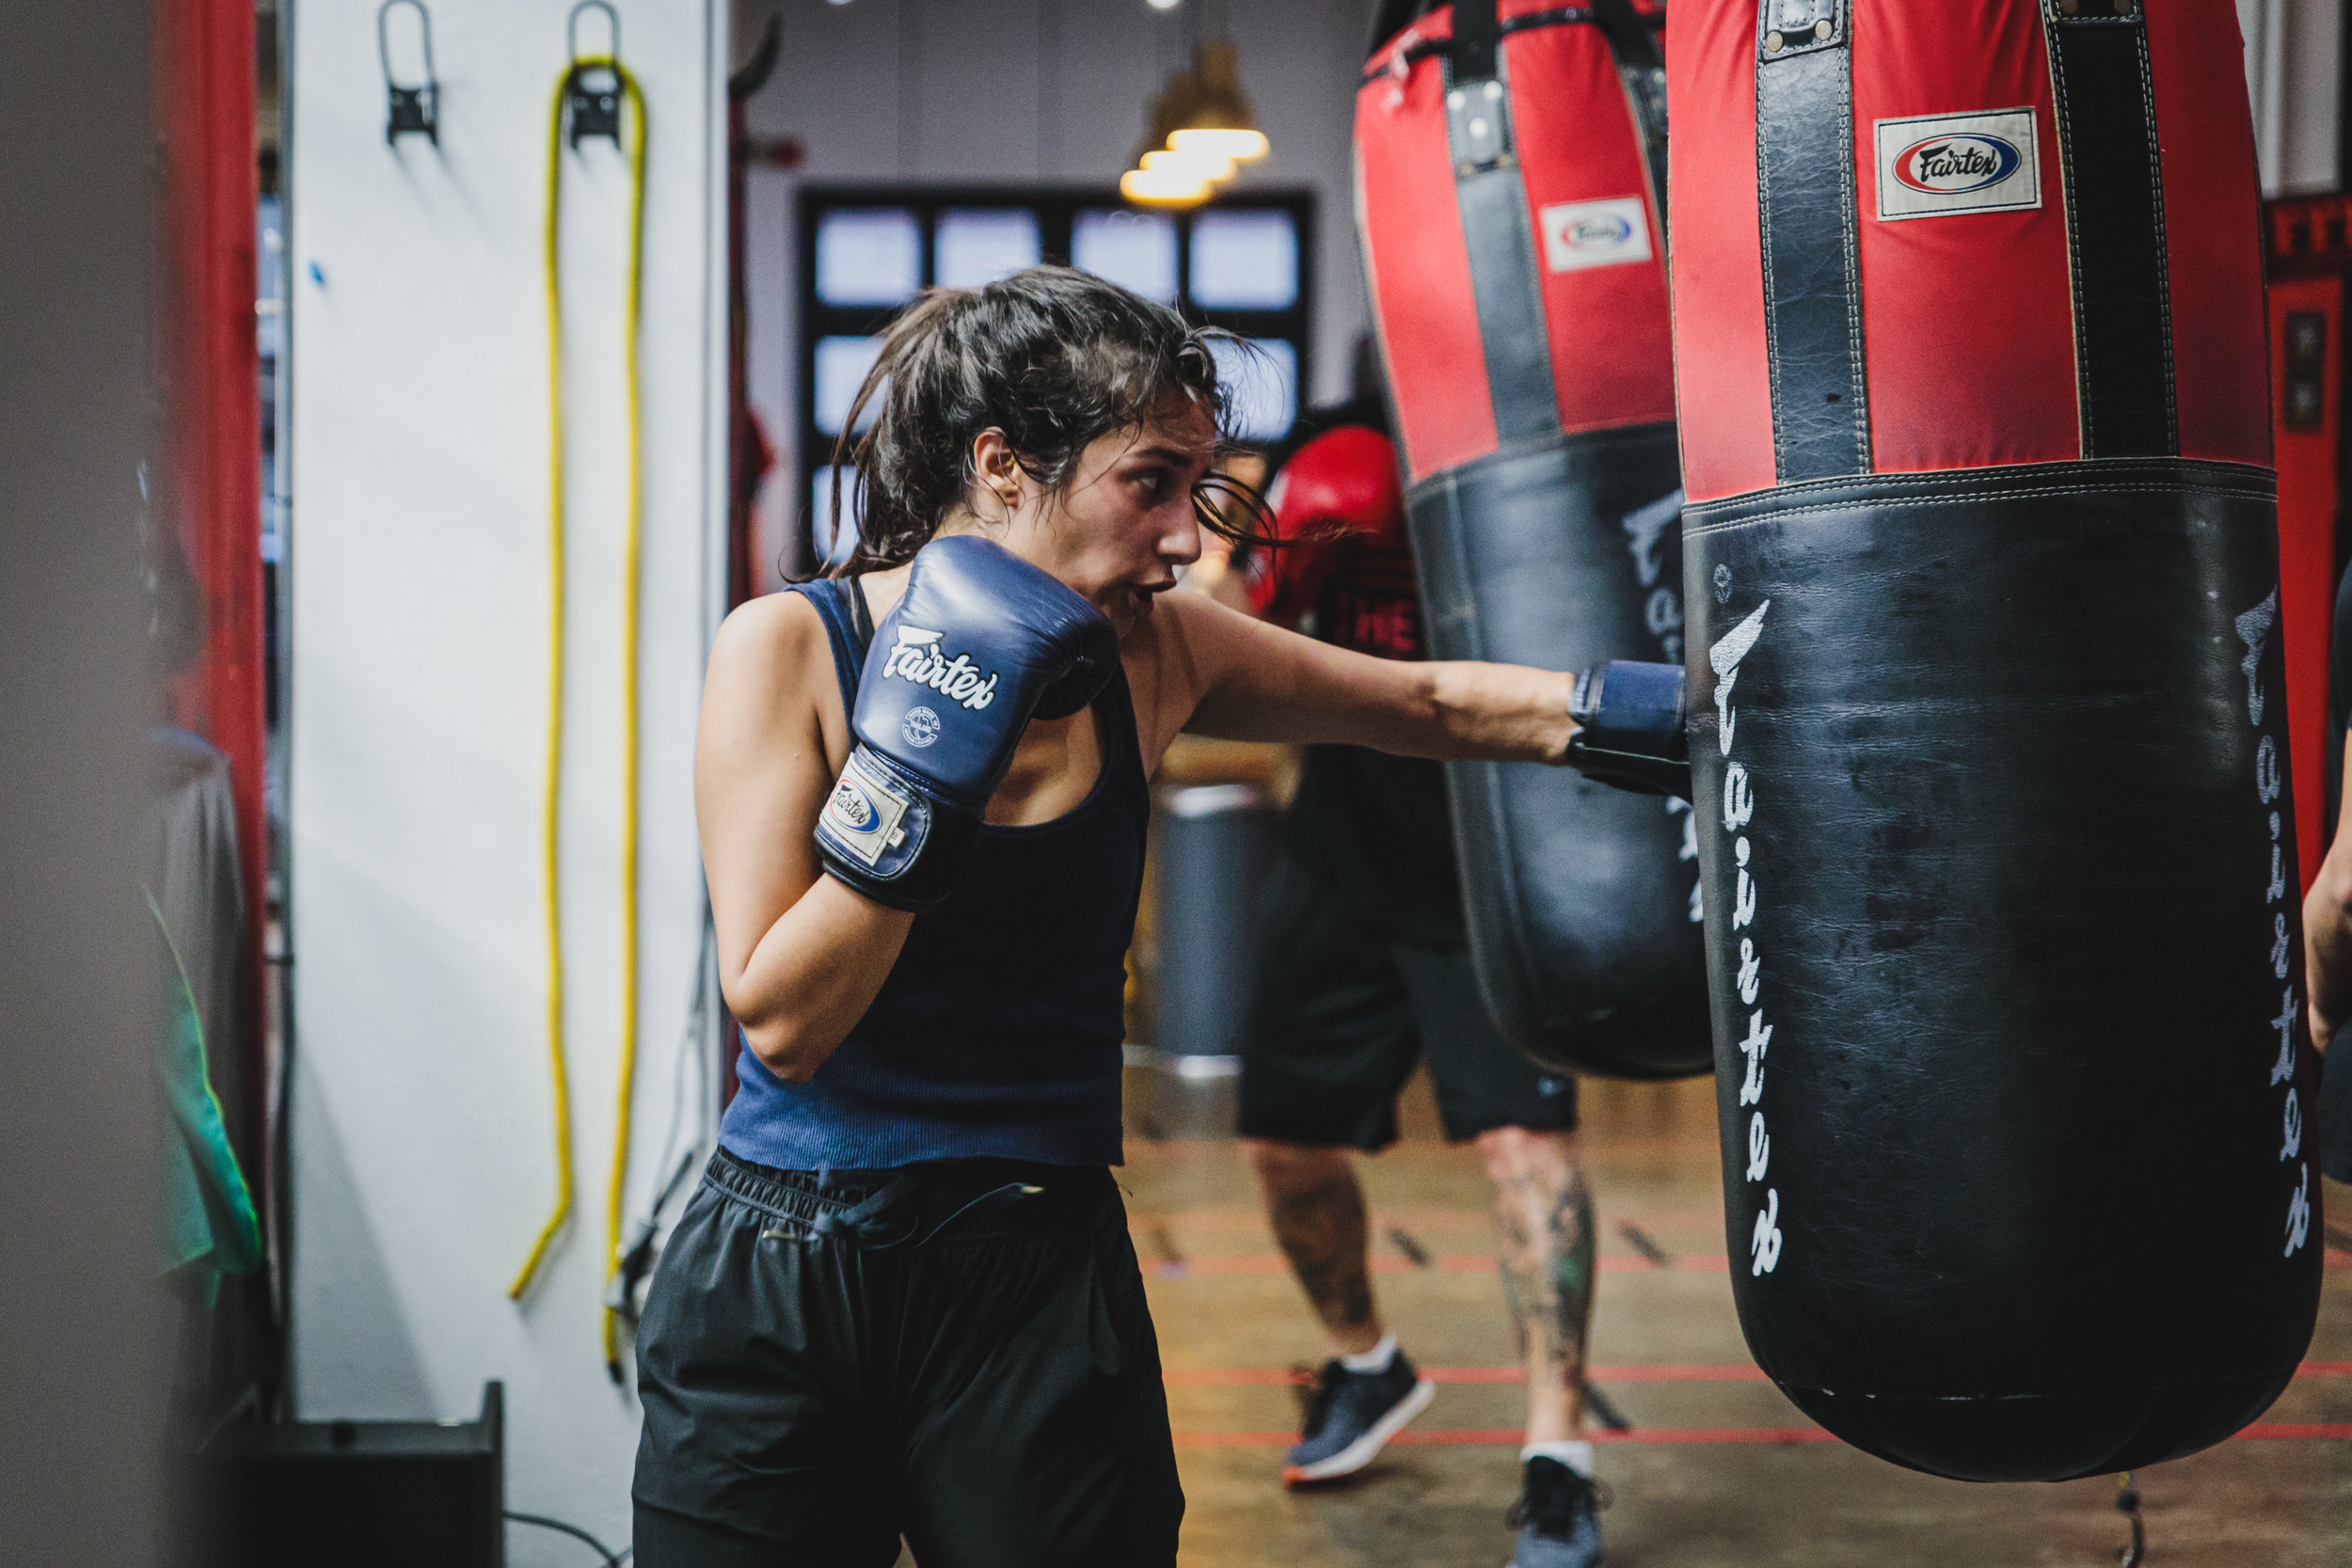 Boxing! - This class is perfect for those who enjoy working out in a fast-paced concept and want a combination of a cardio and technical boxing class. Expect to burn an average of 800 calories in our high intensity true technique boxing classes!